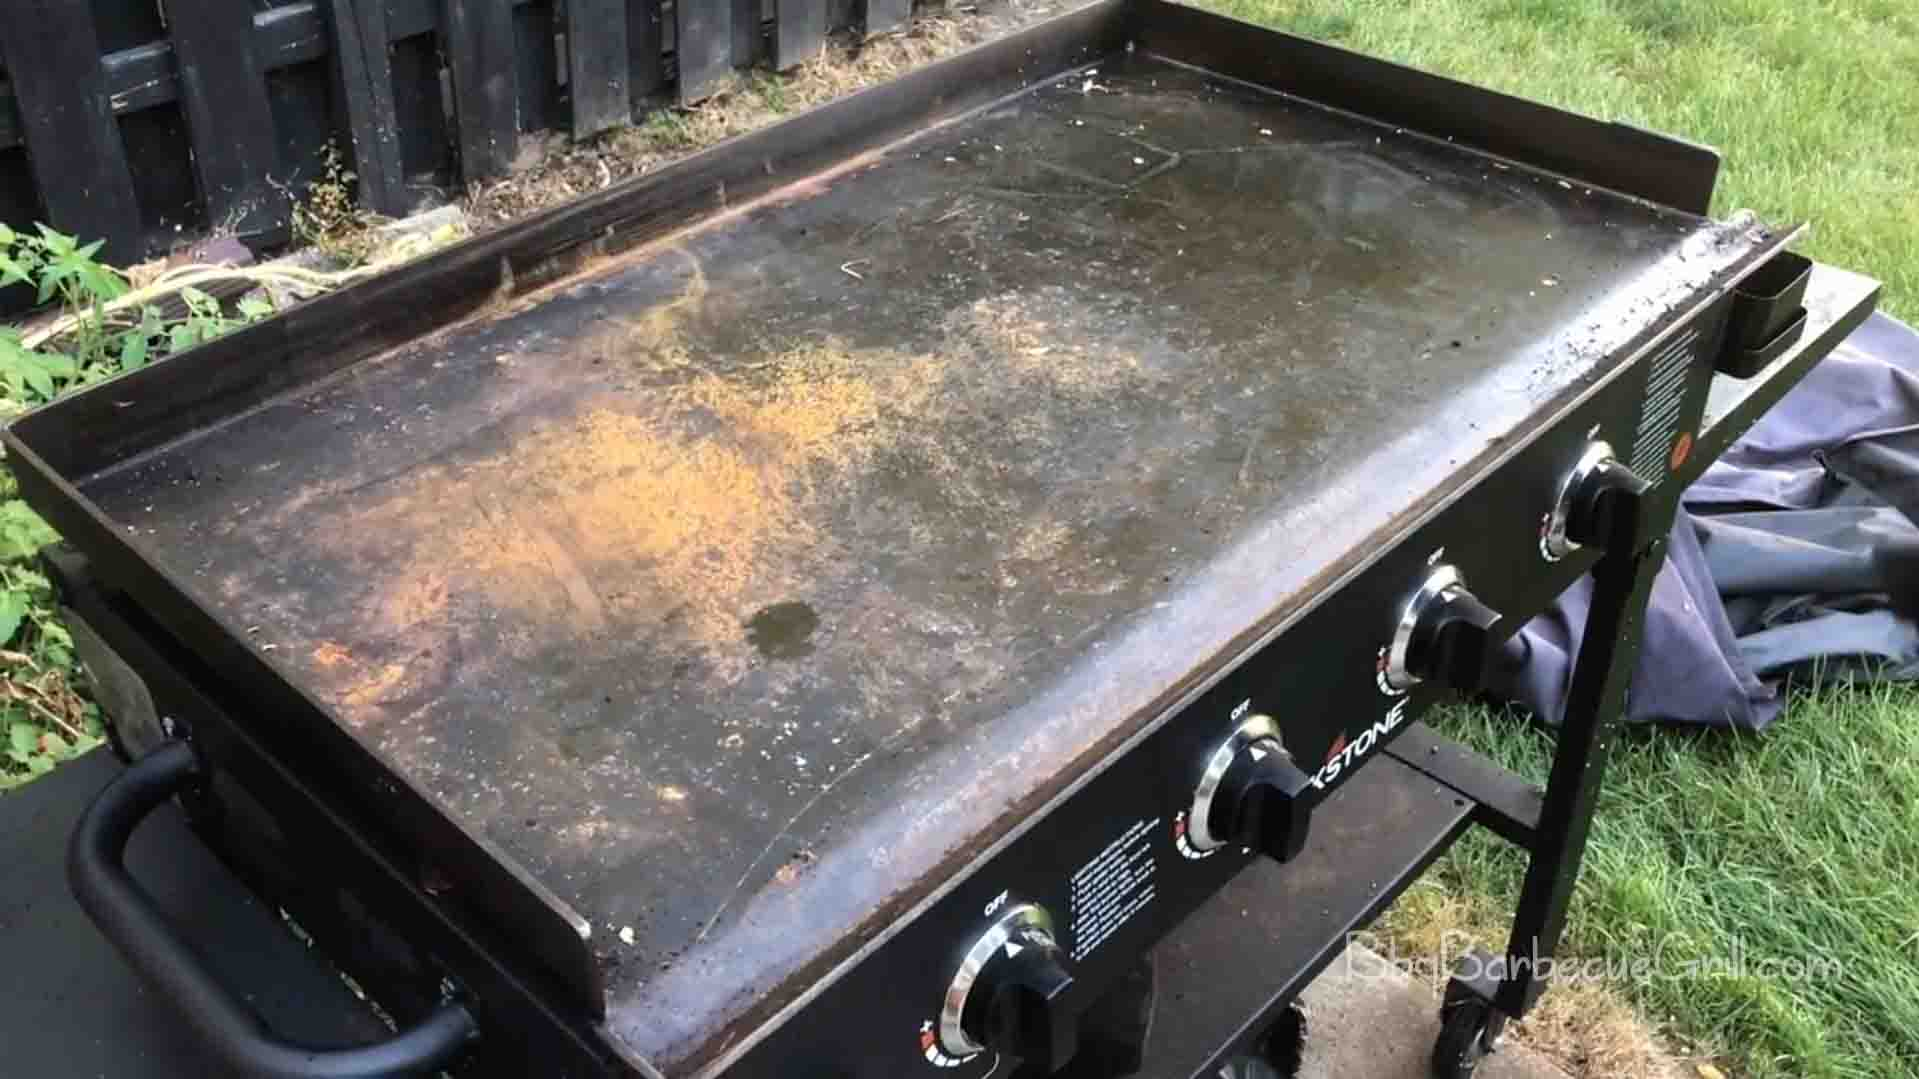 How to remove rust from blackstone griddle